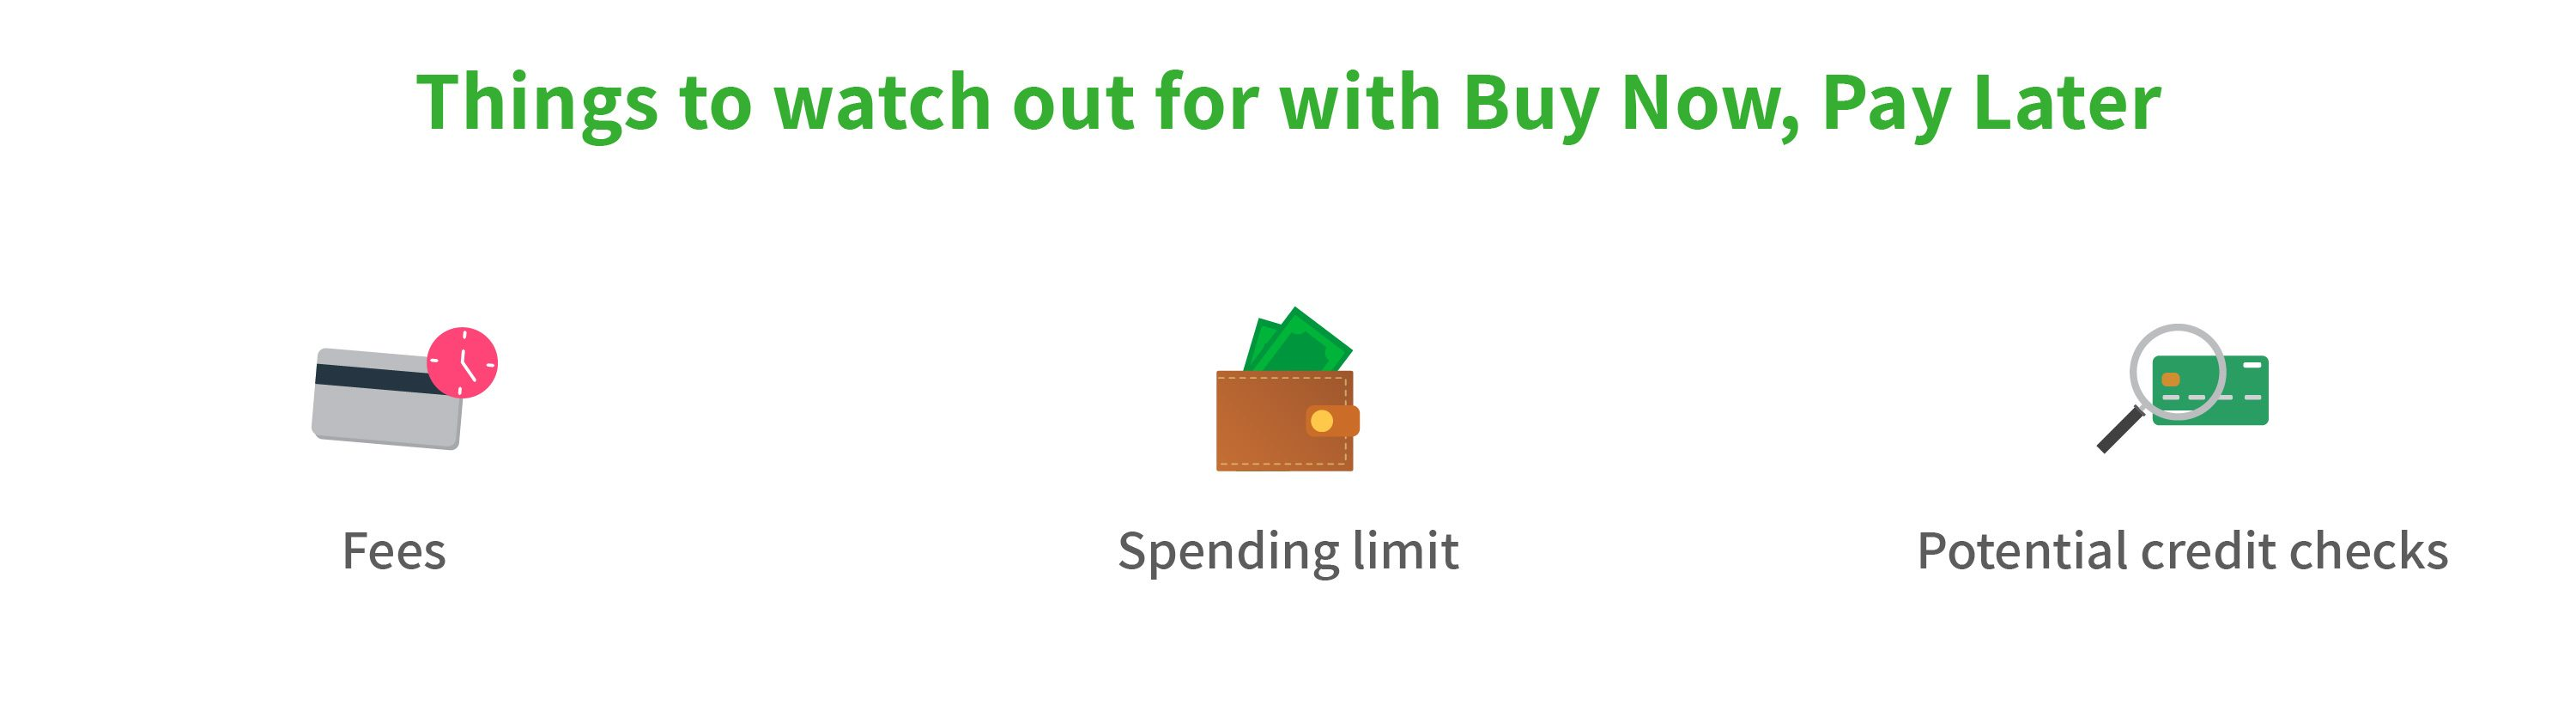 buy-now-pay-later-christmas